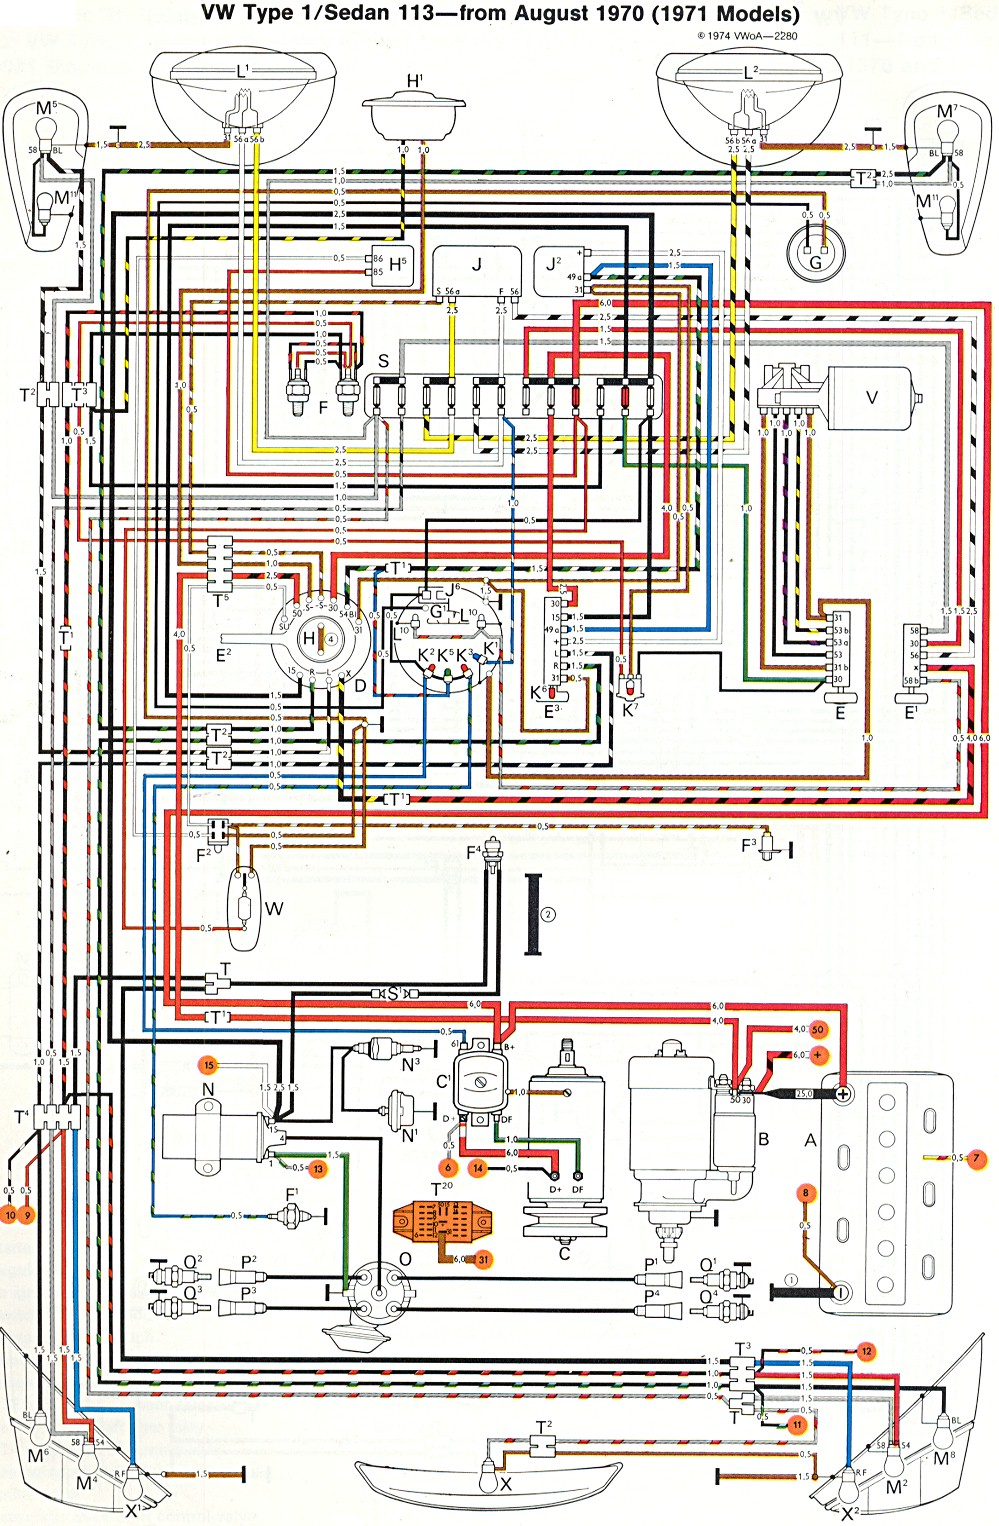 bug_super_71 1971 super beetle wiring diagram thegoldenbug com vw bug wiring diagram at arjmand.co